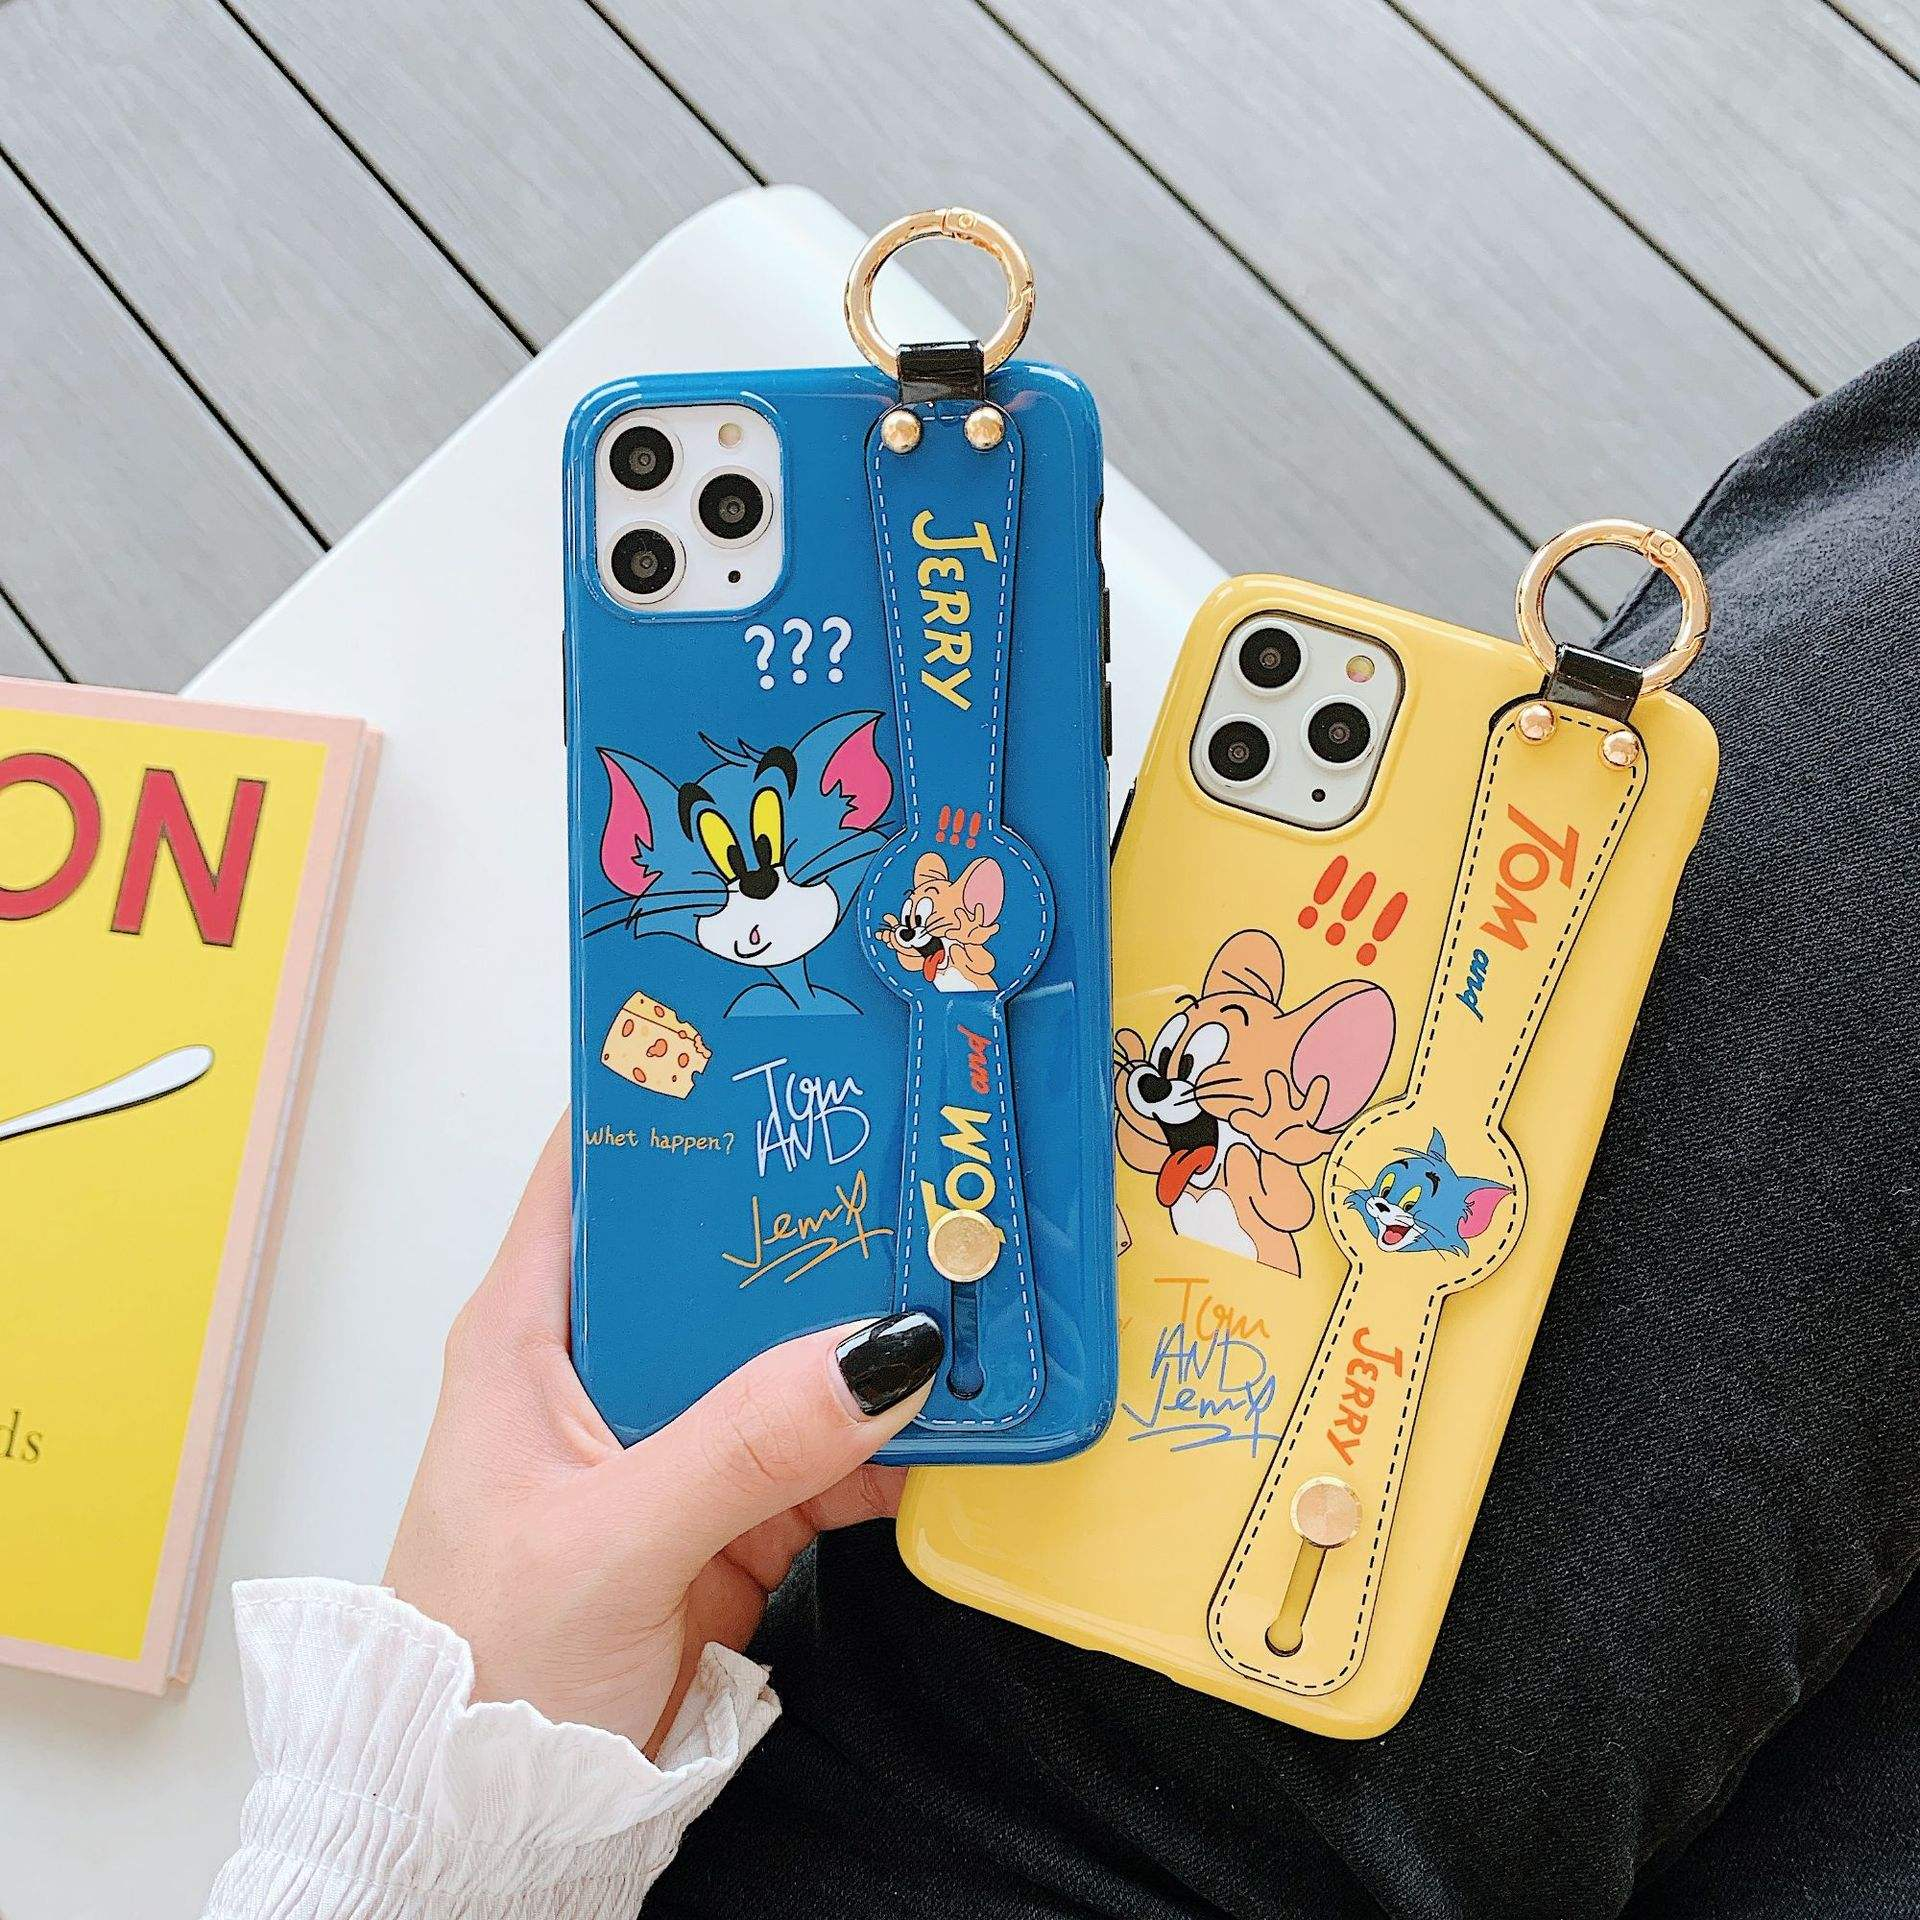 Wristband Tom and Jerry for iphone 11 Pro Max Apple 7 8 plus XS mobile phone case